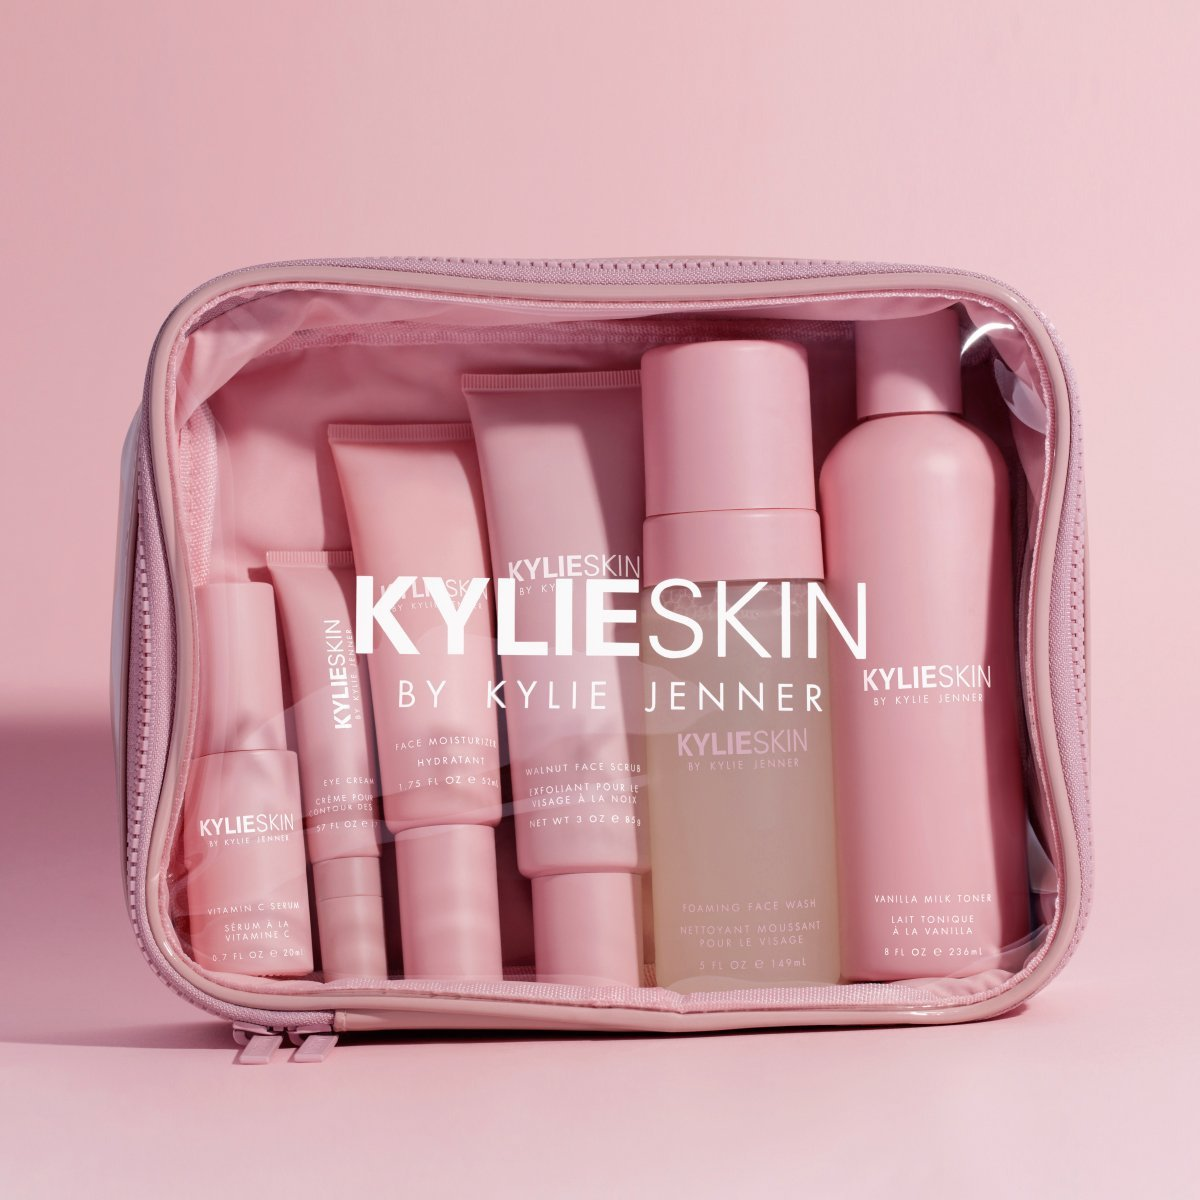 Kylie Skin Makeup Travel Bag with products by Kylie Jenner